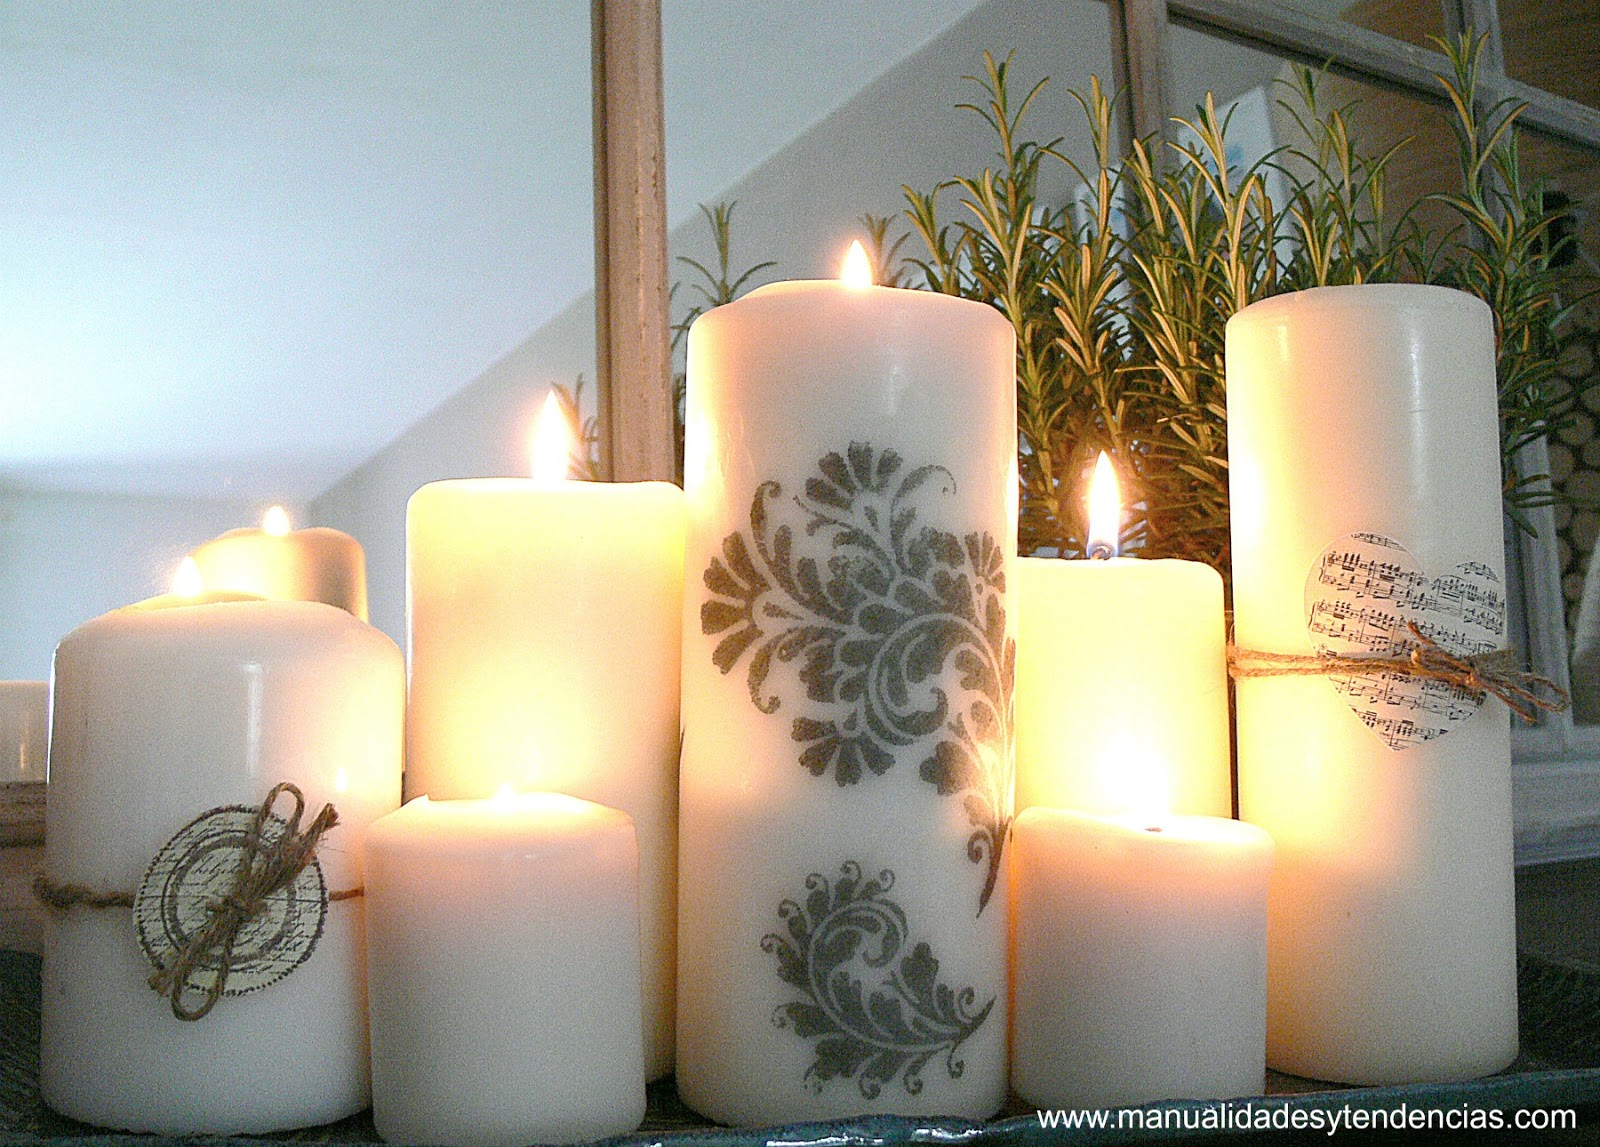 Manualidades y tendencias c mo decorar velas con sellos candle decorating idea - Decorar con velas ...